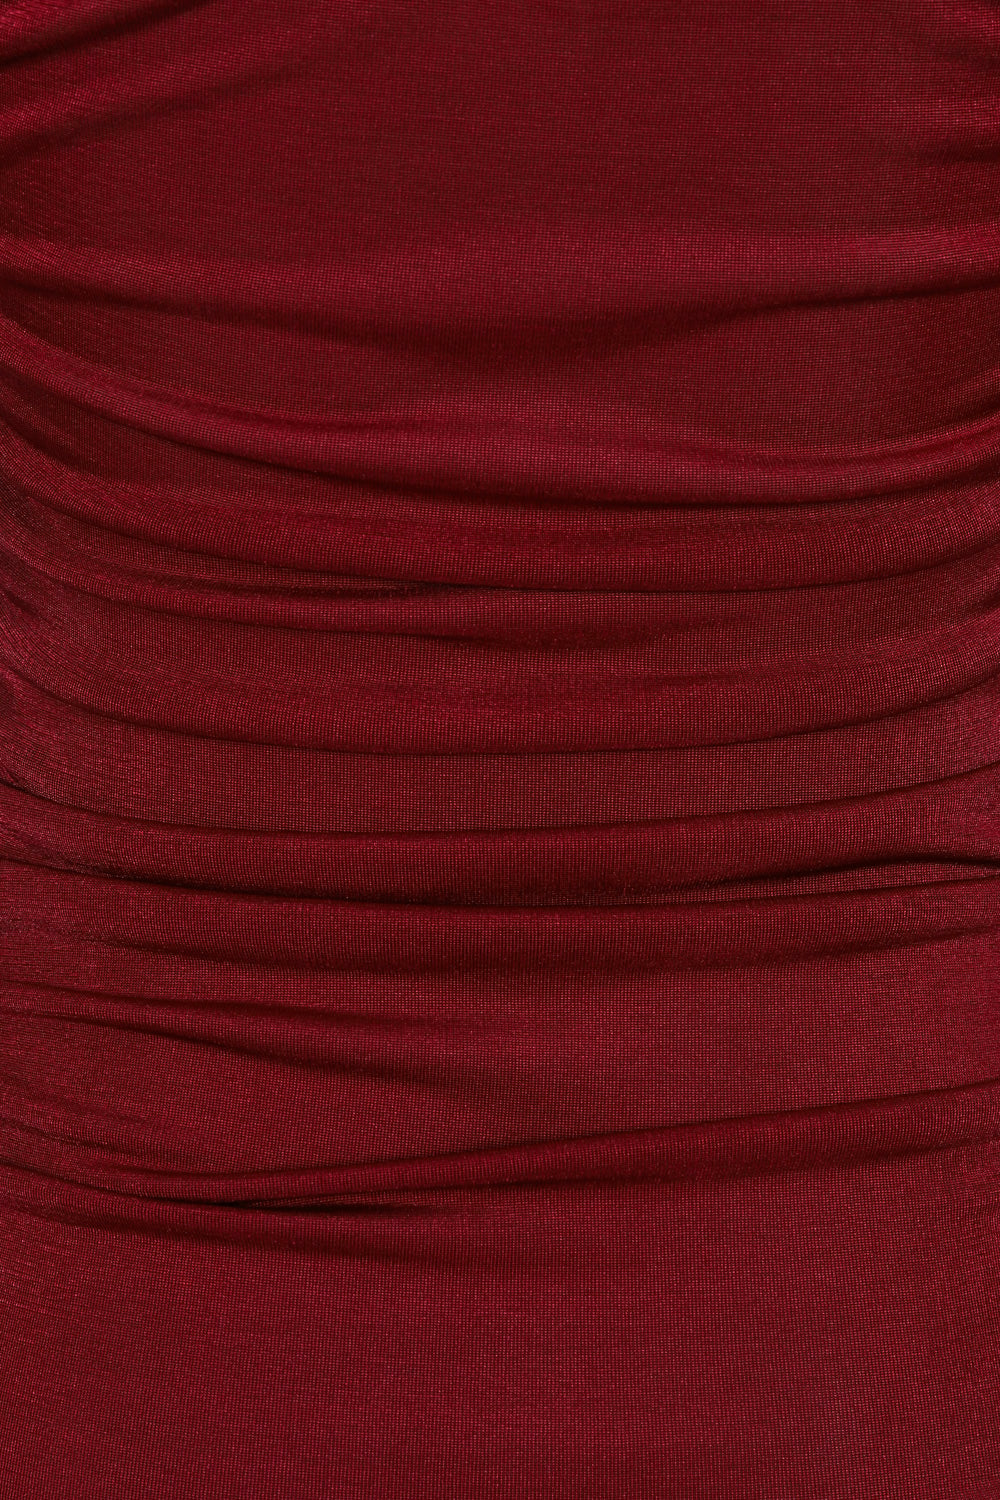 All Ruched Up Berry Off The Shoulder Long Sleeve Slinky Mini Dress